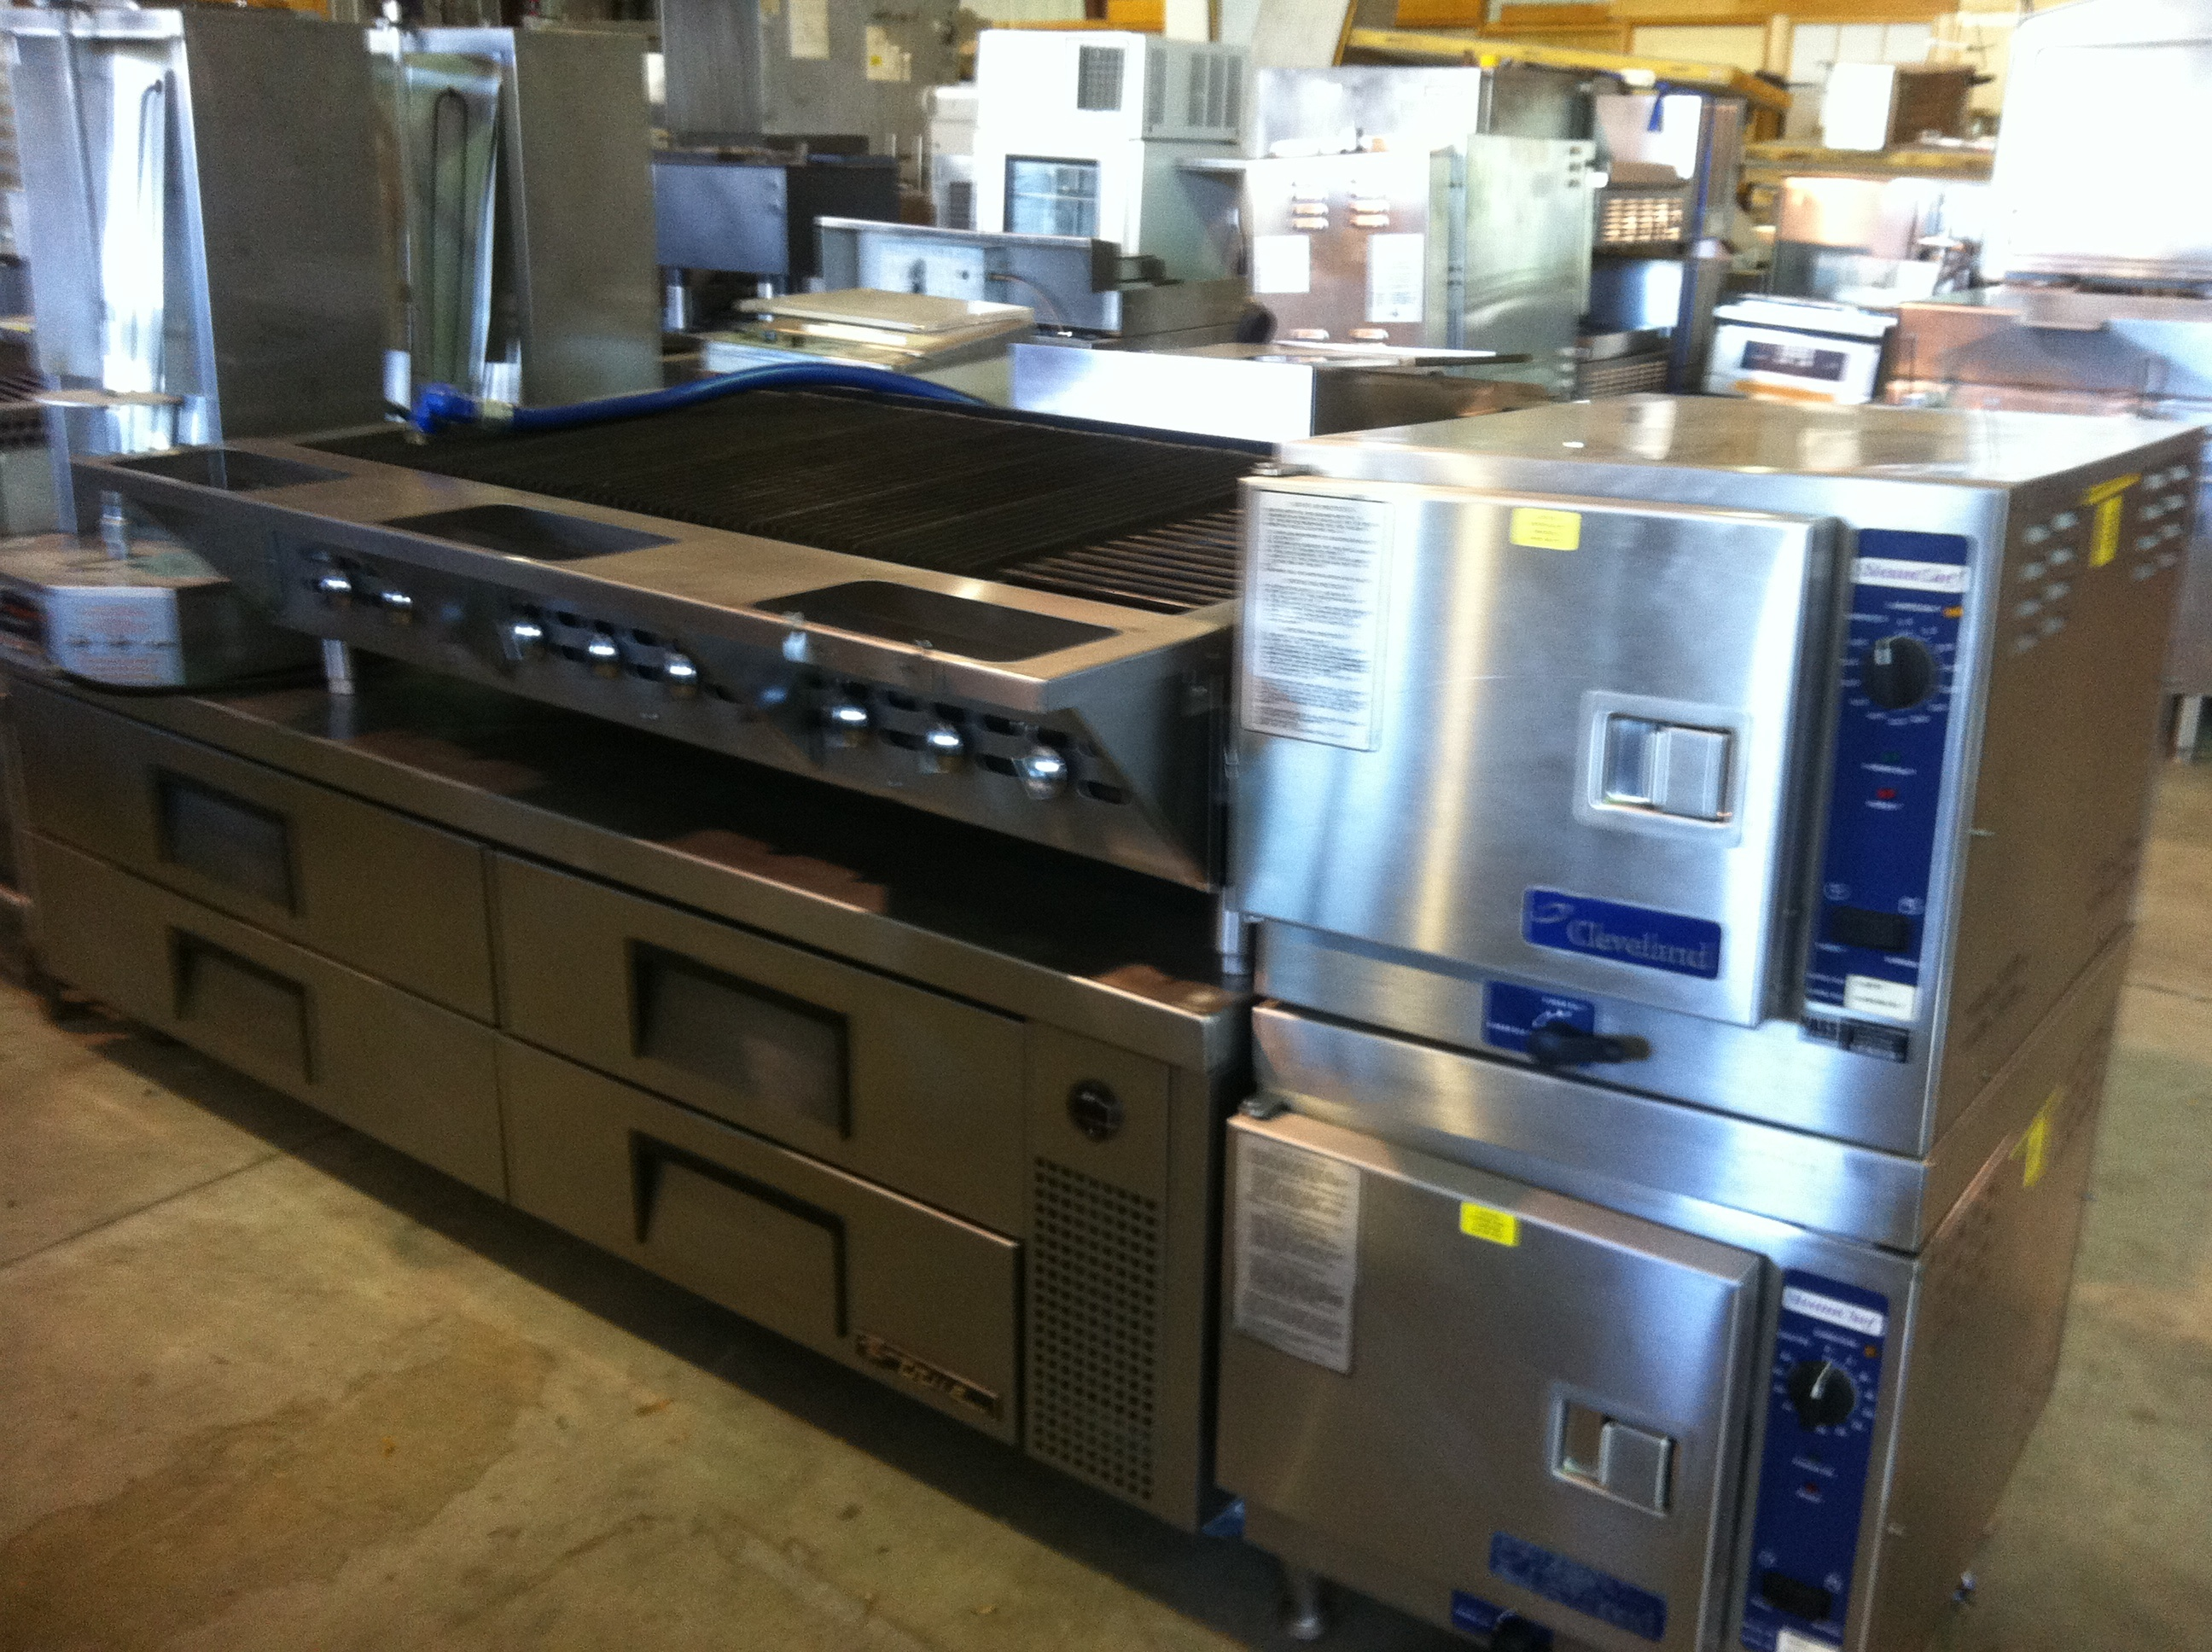 Truckloads Of Used Restaurant Equipment Just Arrived